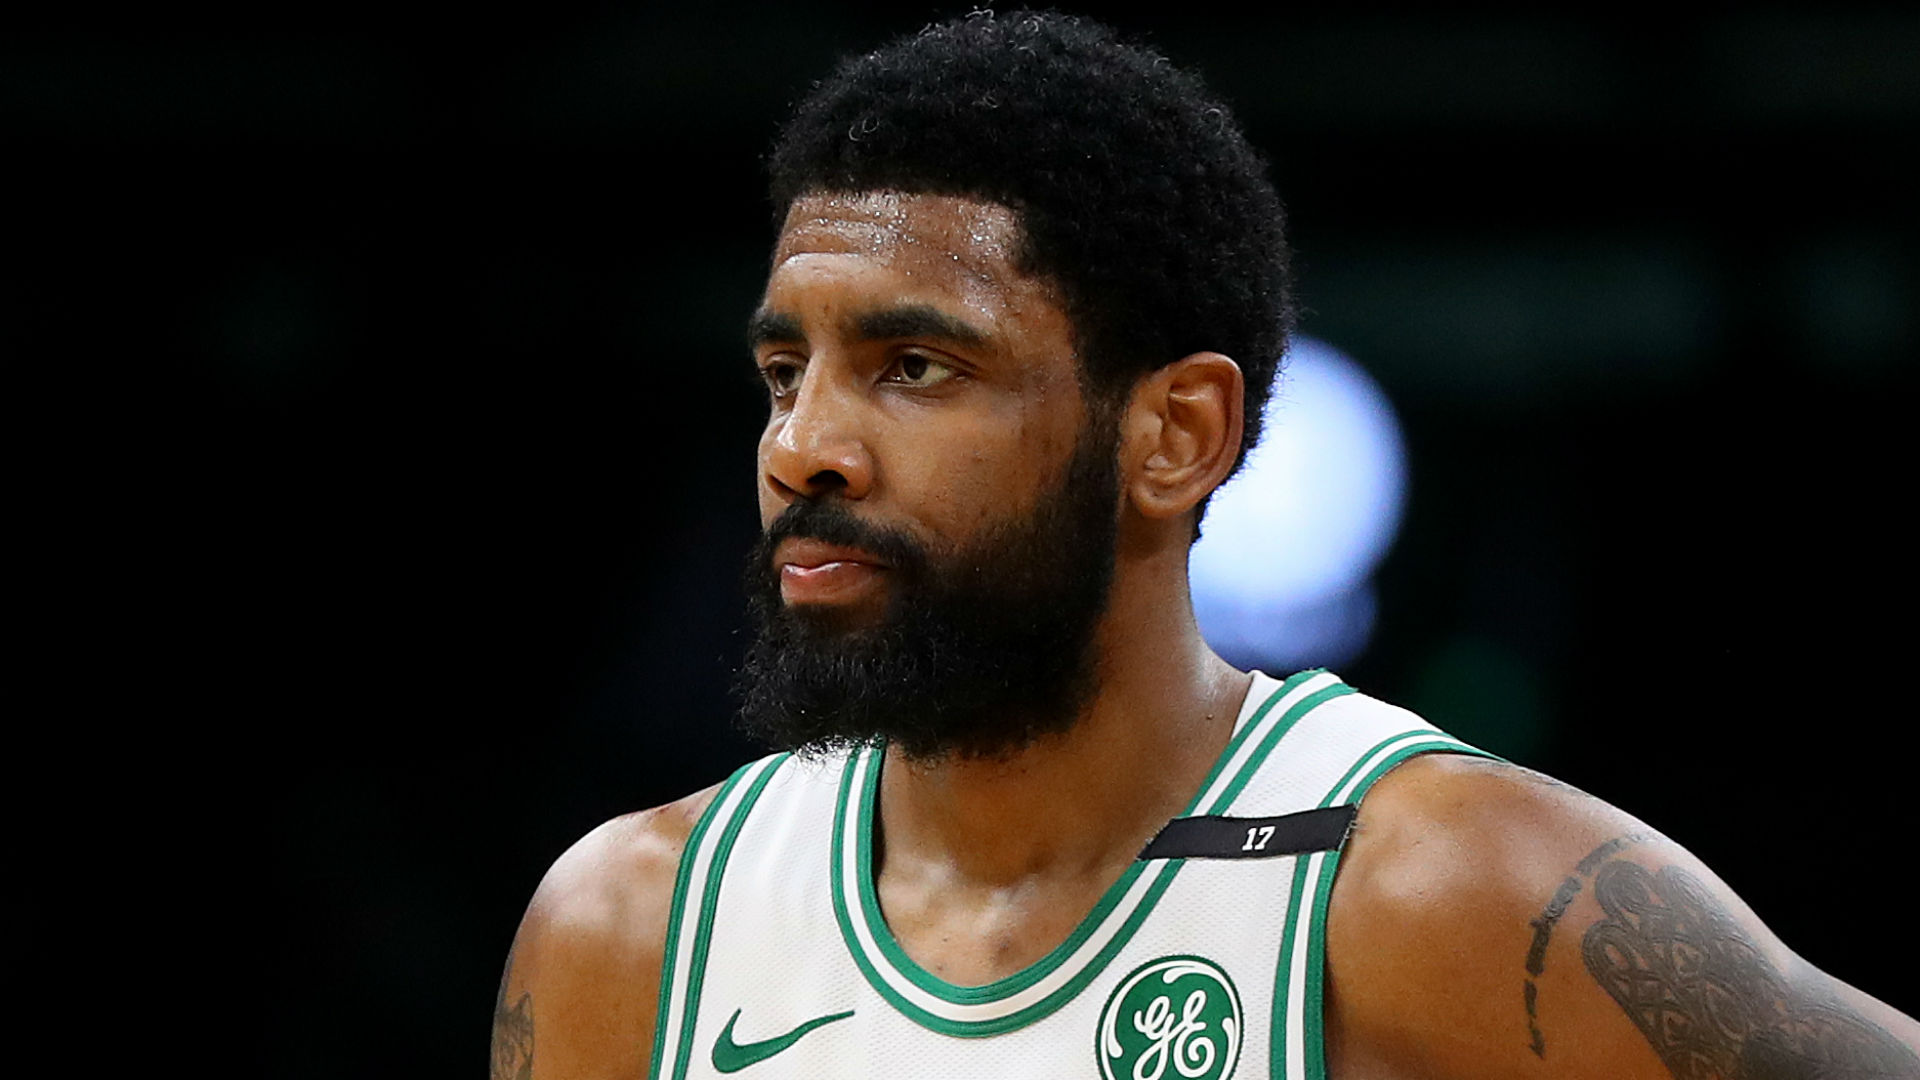 NBA playoffs 2019: Kyrie Irving has 'unwavering' confidence in Celtics